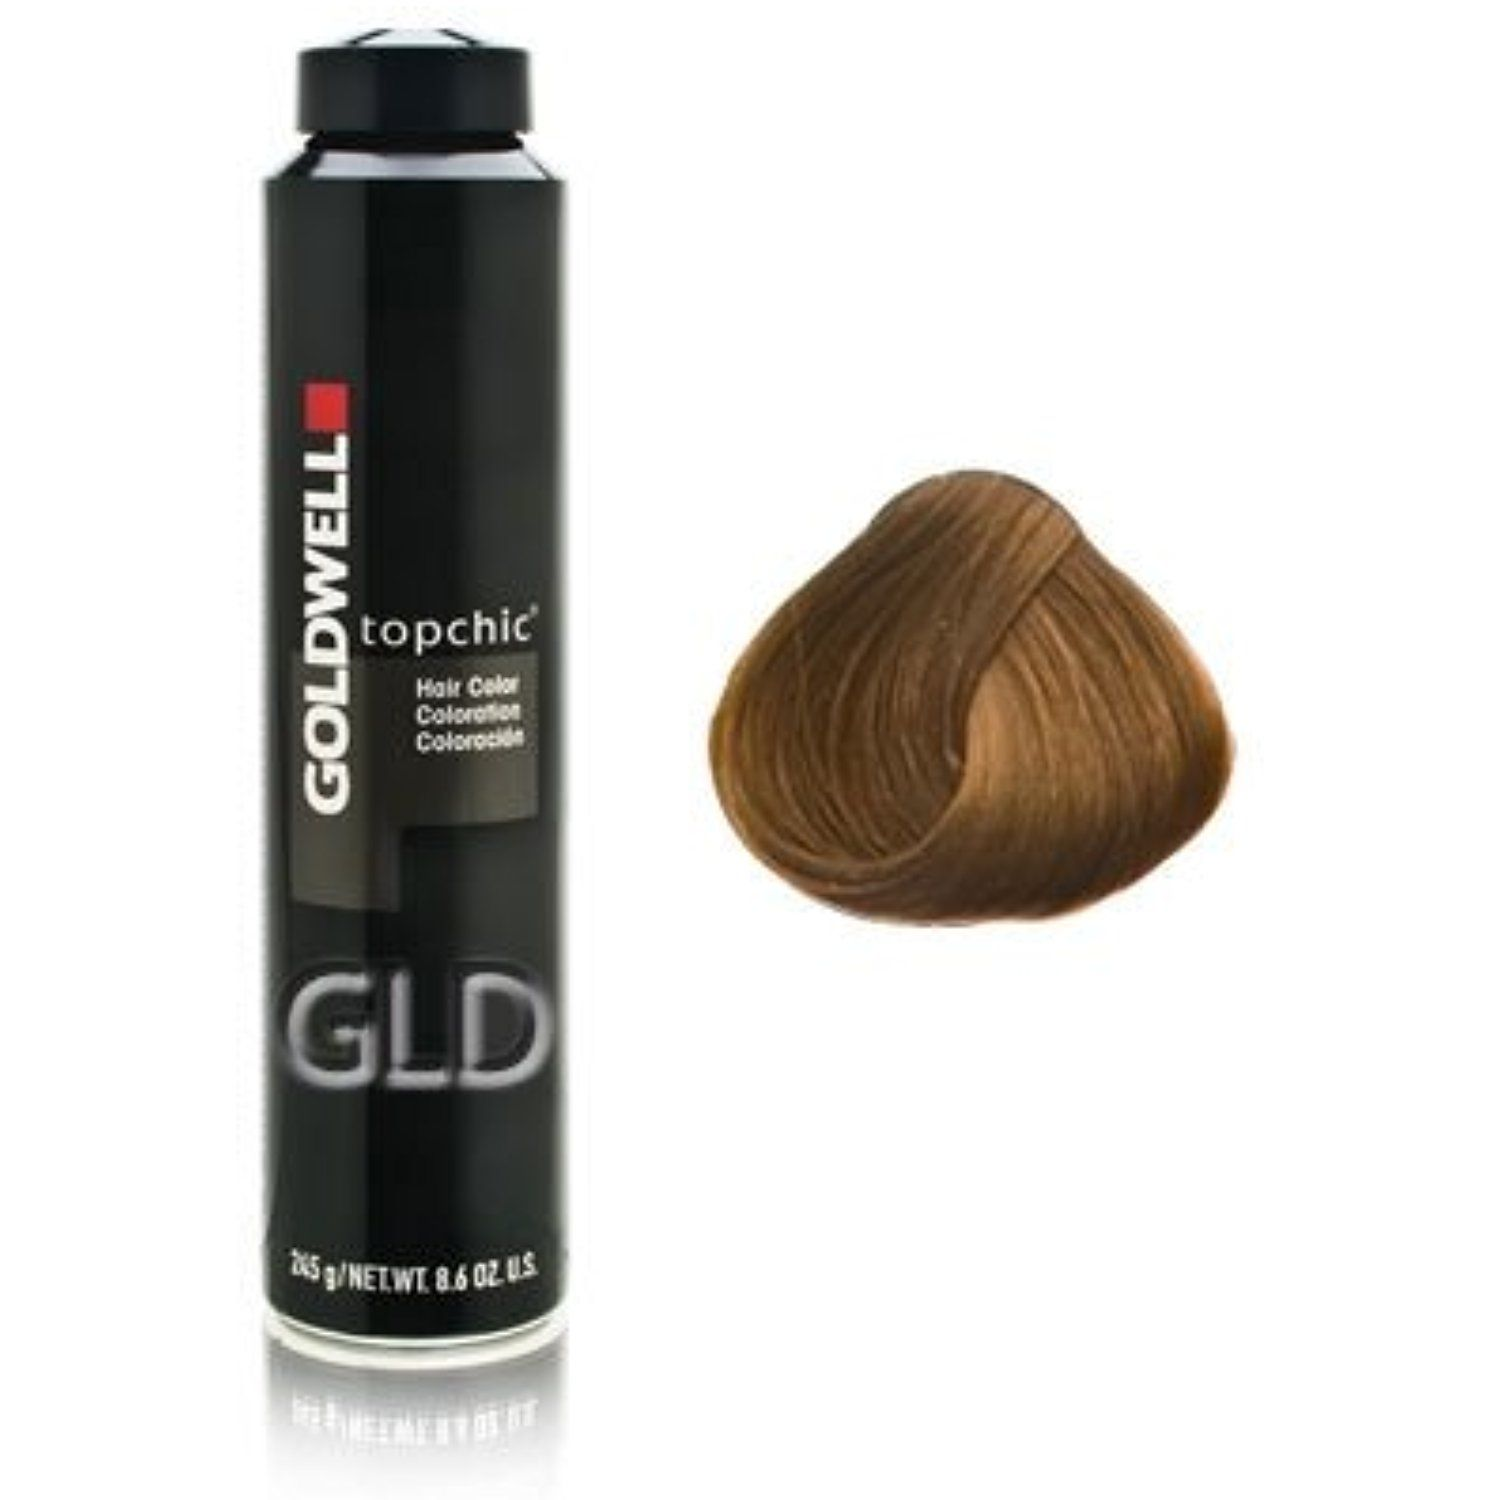 Goldwell Topchic Hair Color Coloration Can 7b Safari Want To Know More Click On The Image This Is An Affiliate Lin Goldwell Hair Color Color Corrector